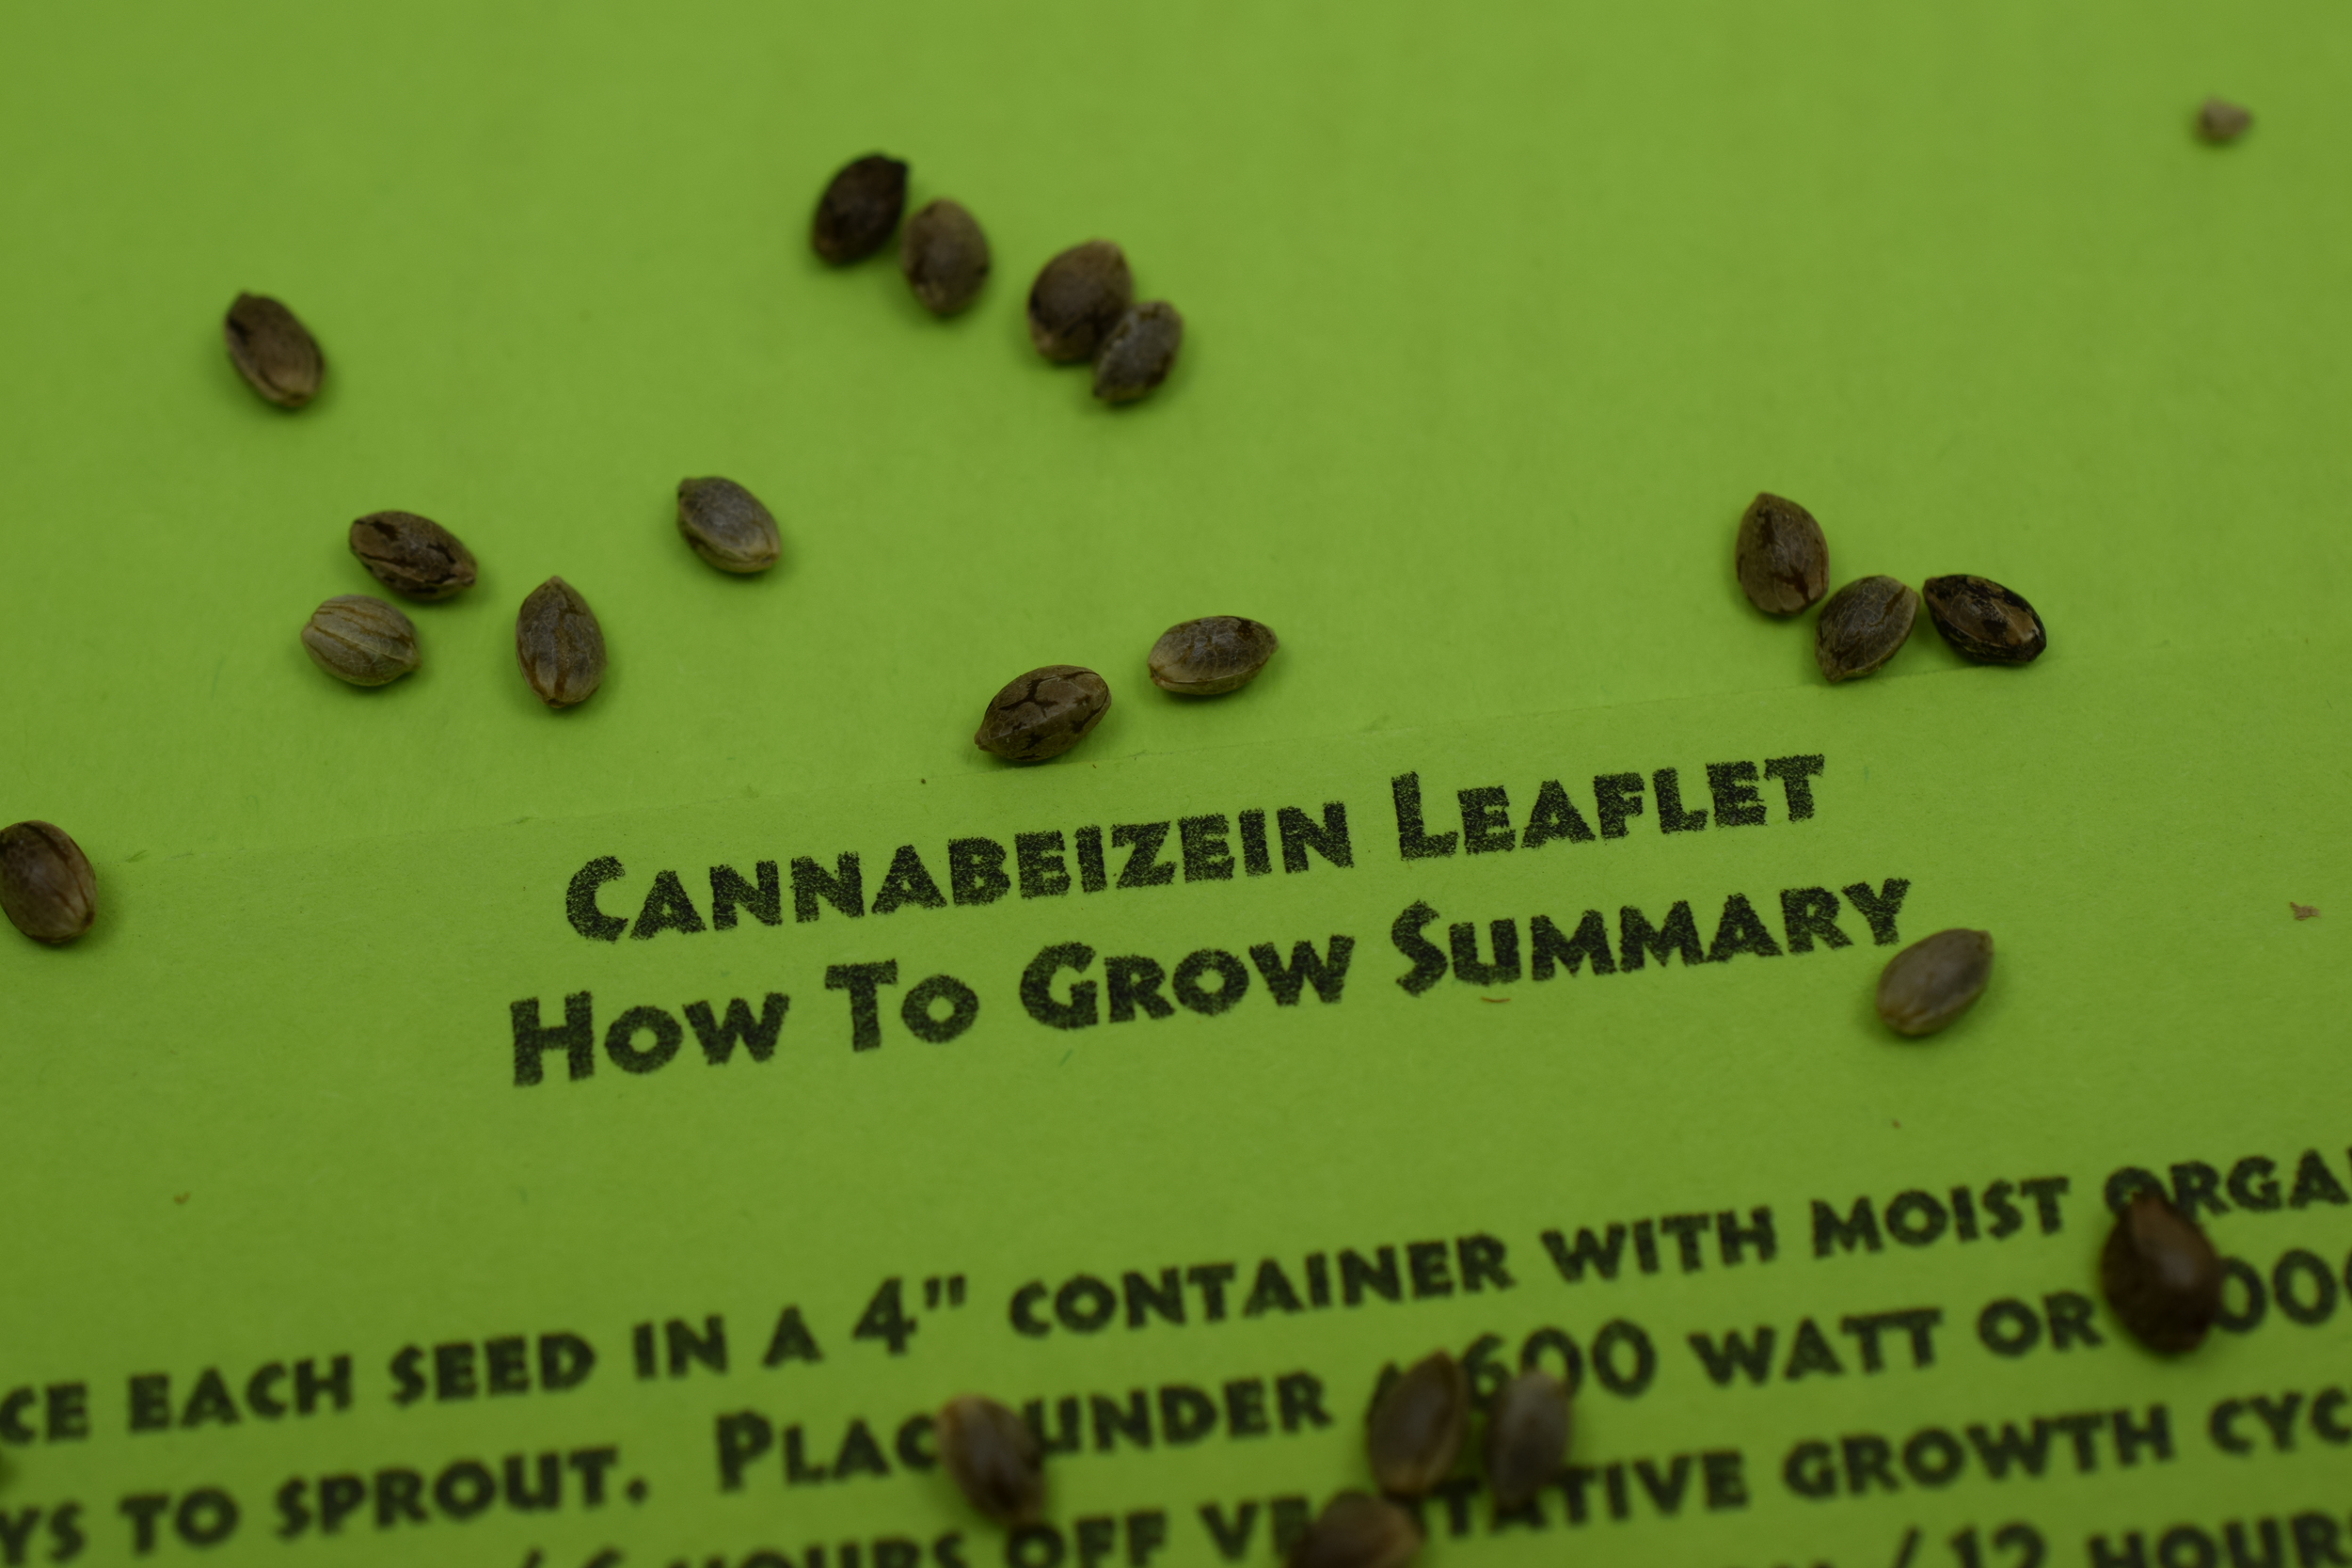 Cannabeizein Leaflet: How To Grow Summary